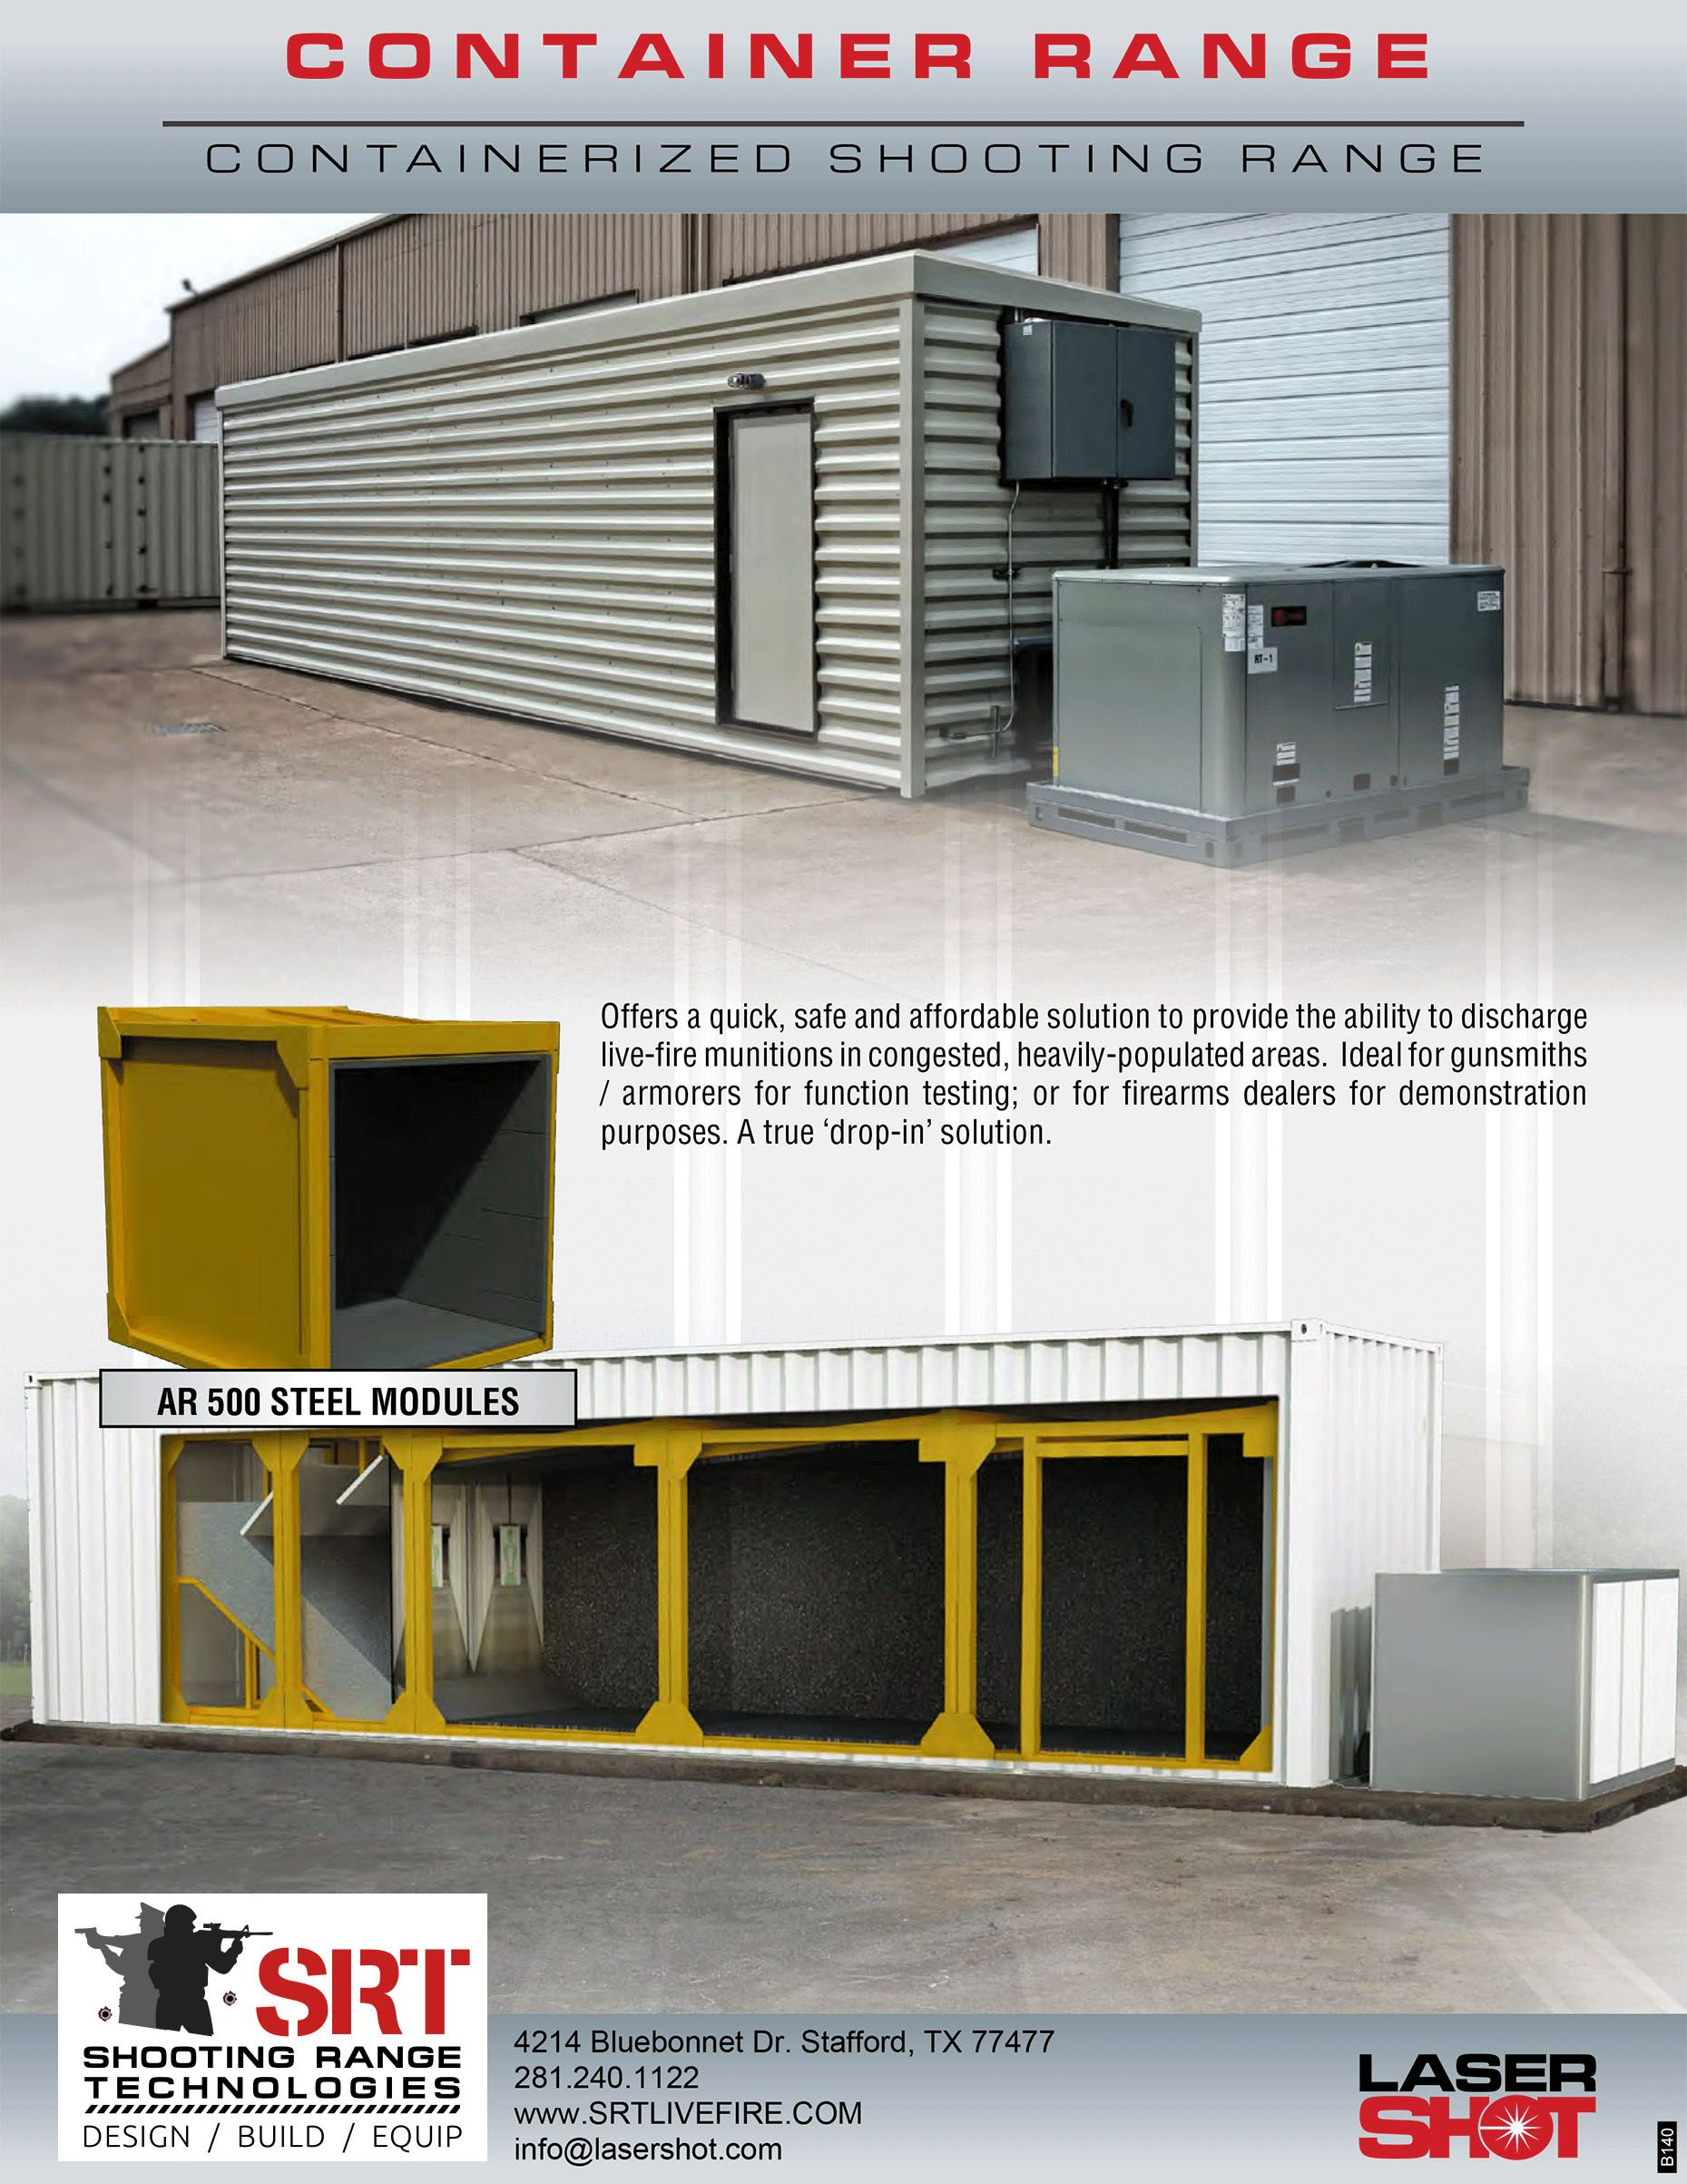 Container Ranges - Shooting Range Technologies™ by Laser Shot, Inc ...